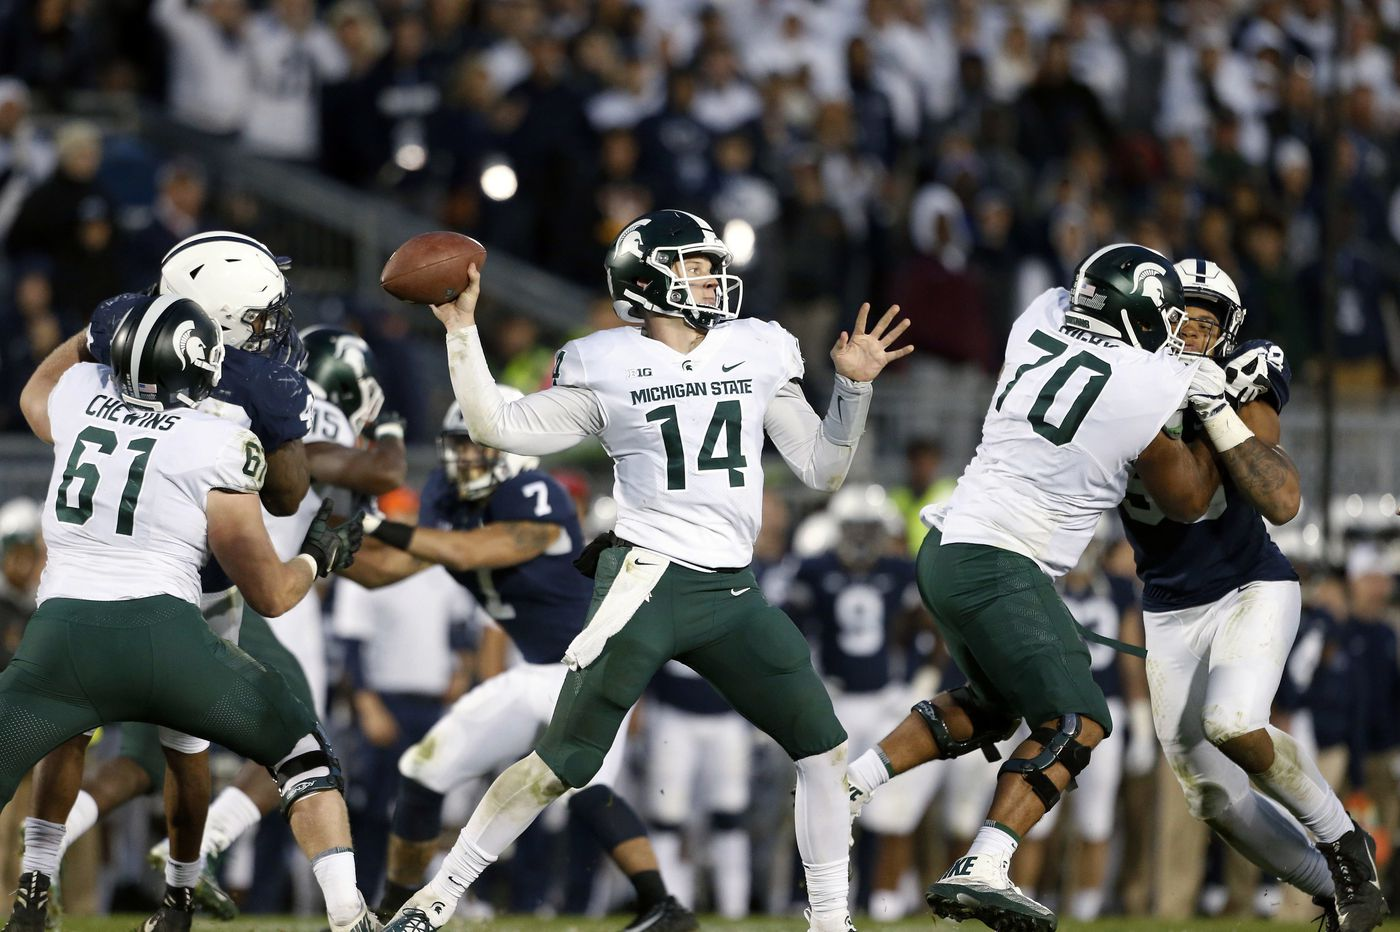 Penn State has plenty of familiarity with Michigan State quarterback Brian Lewerke